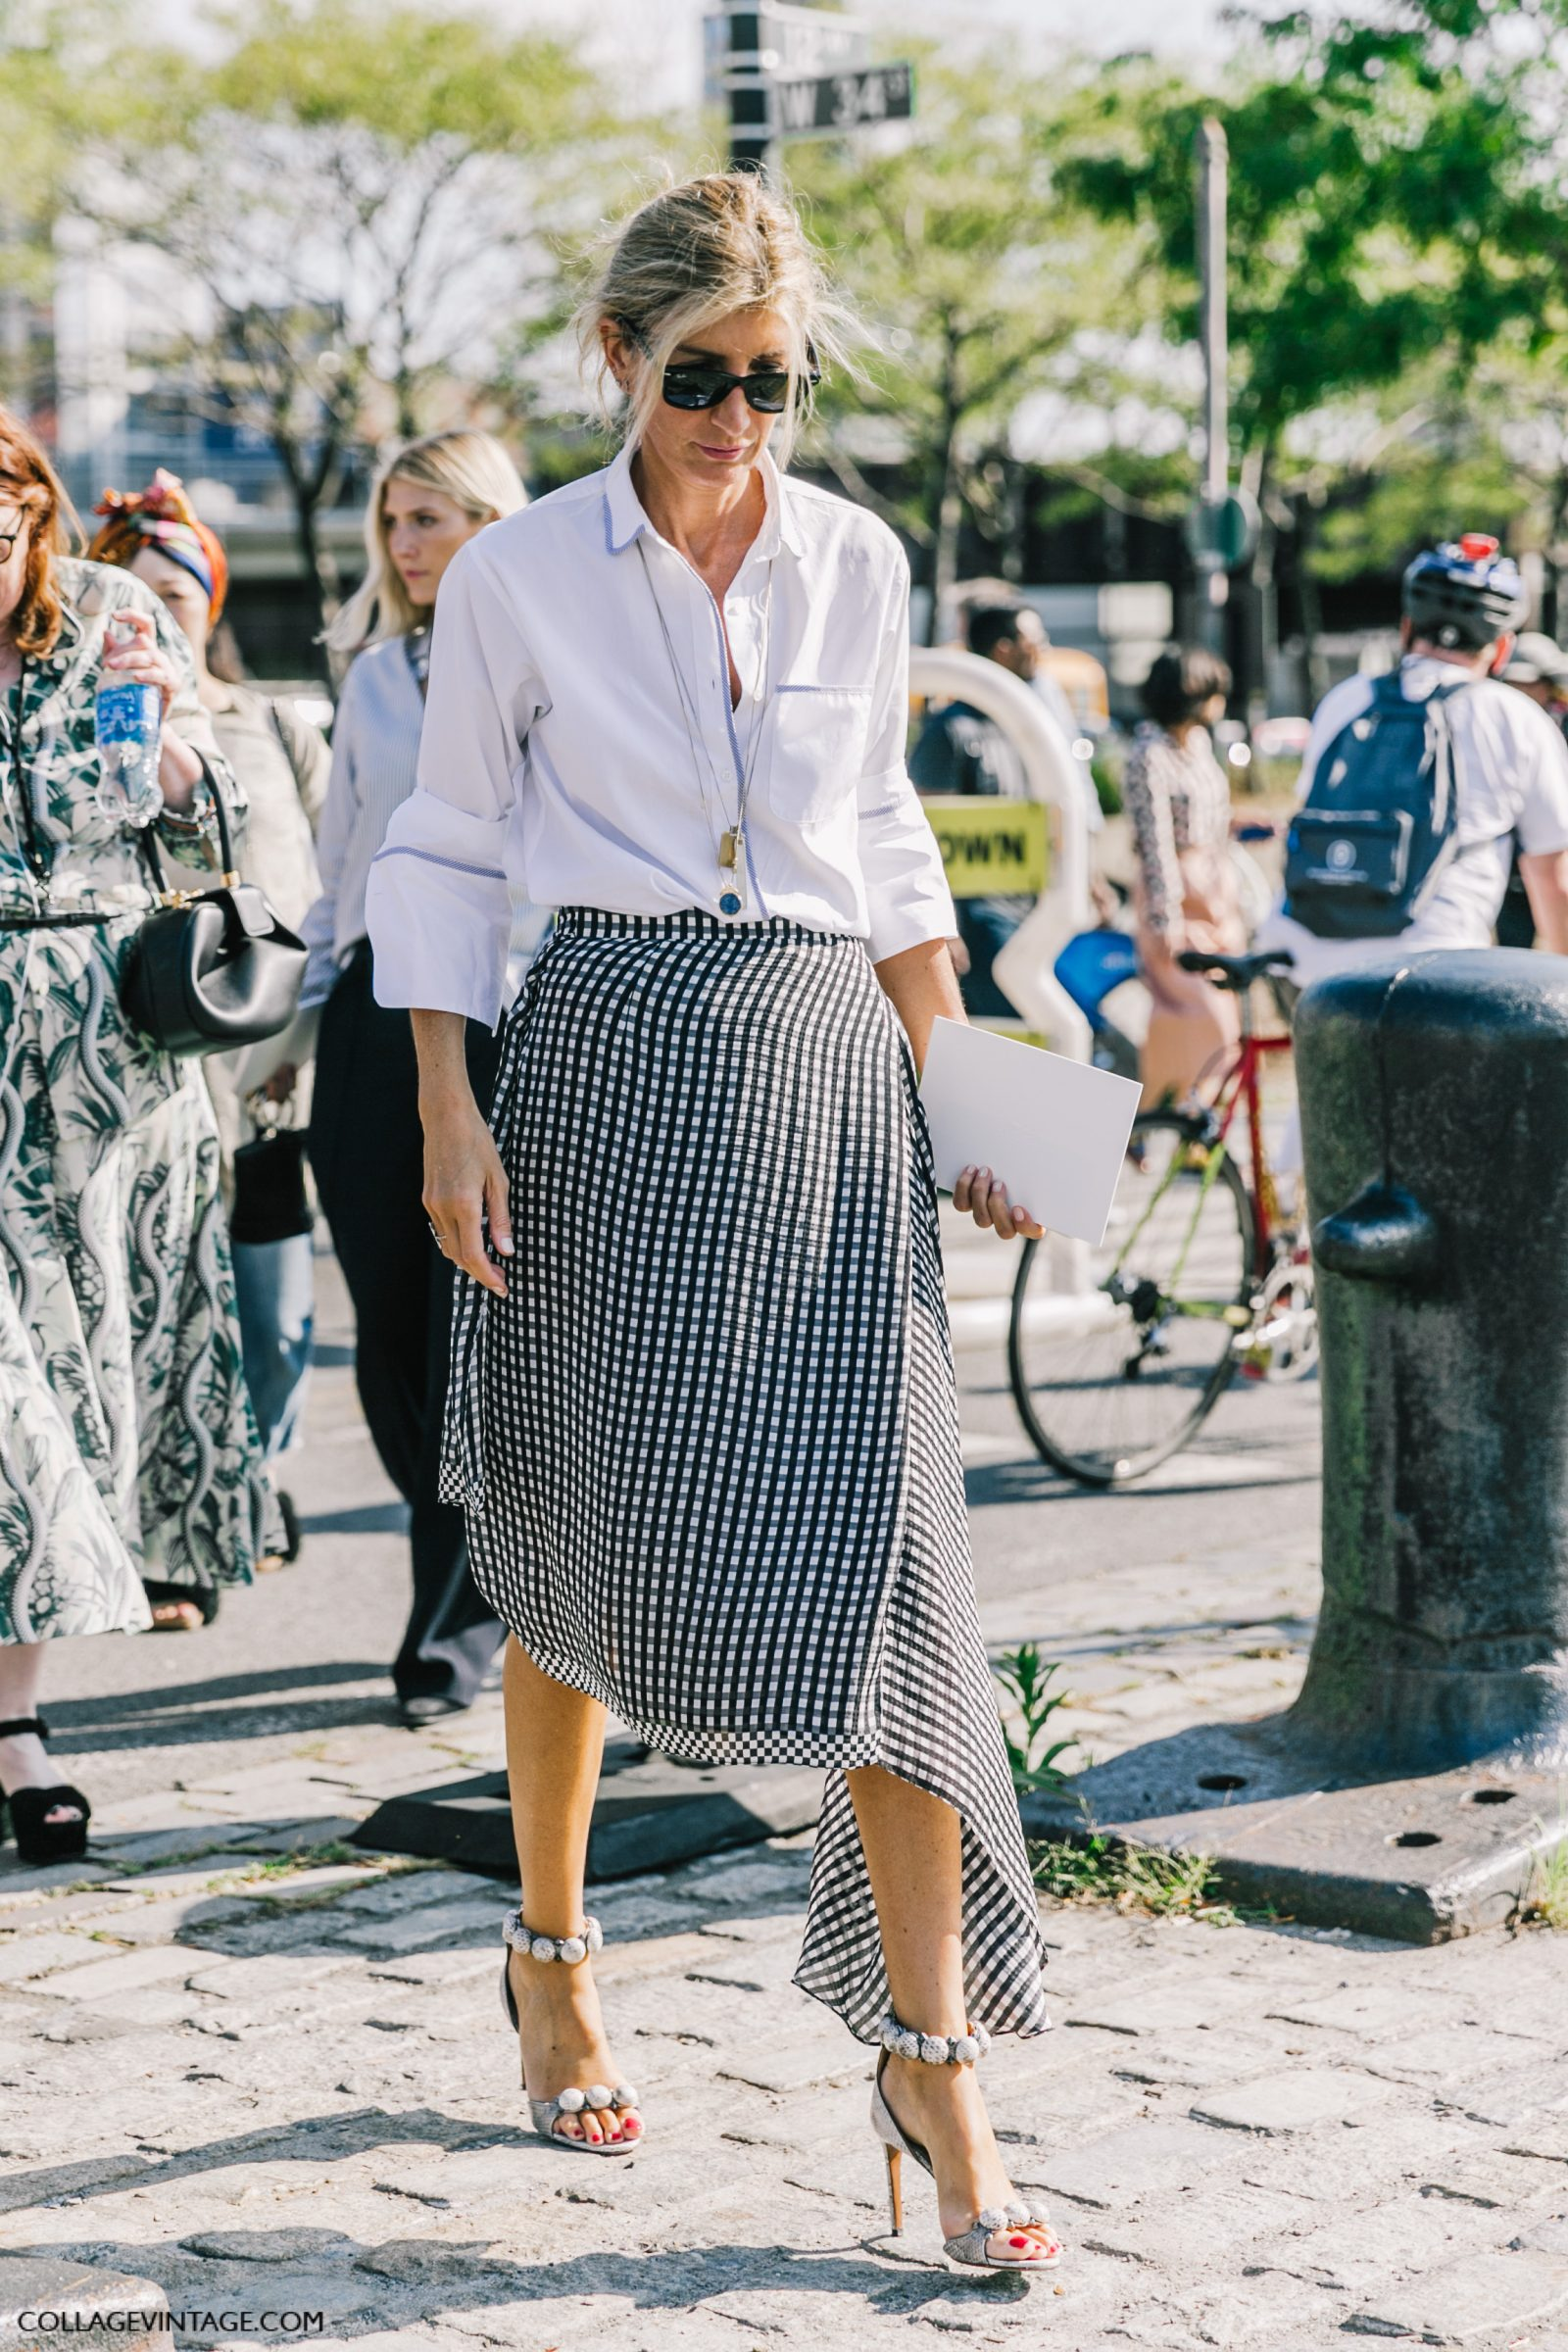 nyfw-new_york_fashion_week_ss17-street_style-outfits-collage_vintage-vintage-mansur_gavriel-rodarte-coach-135